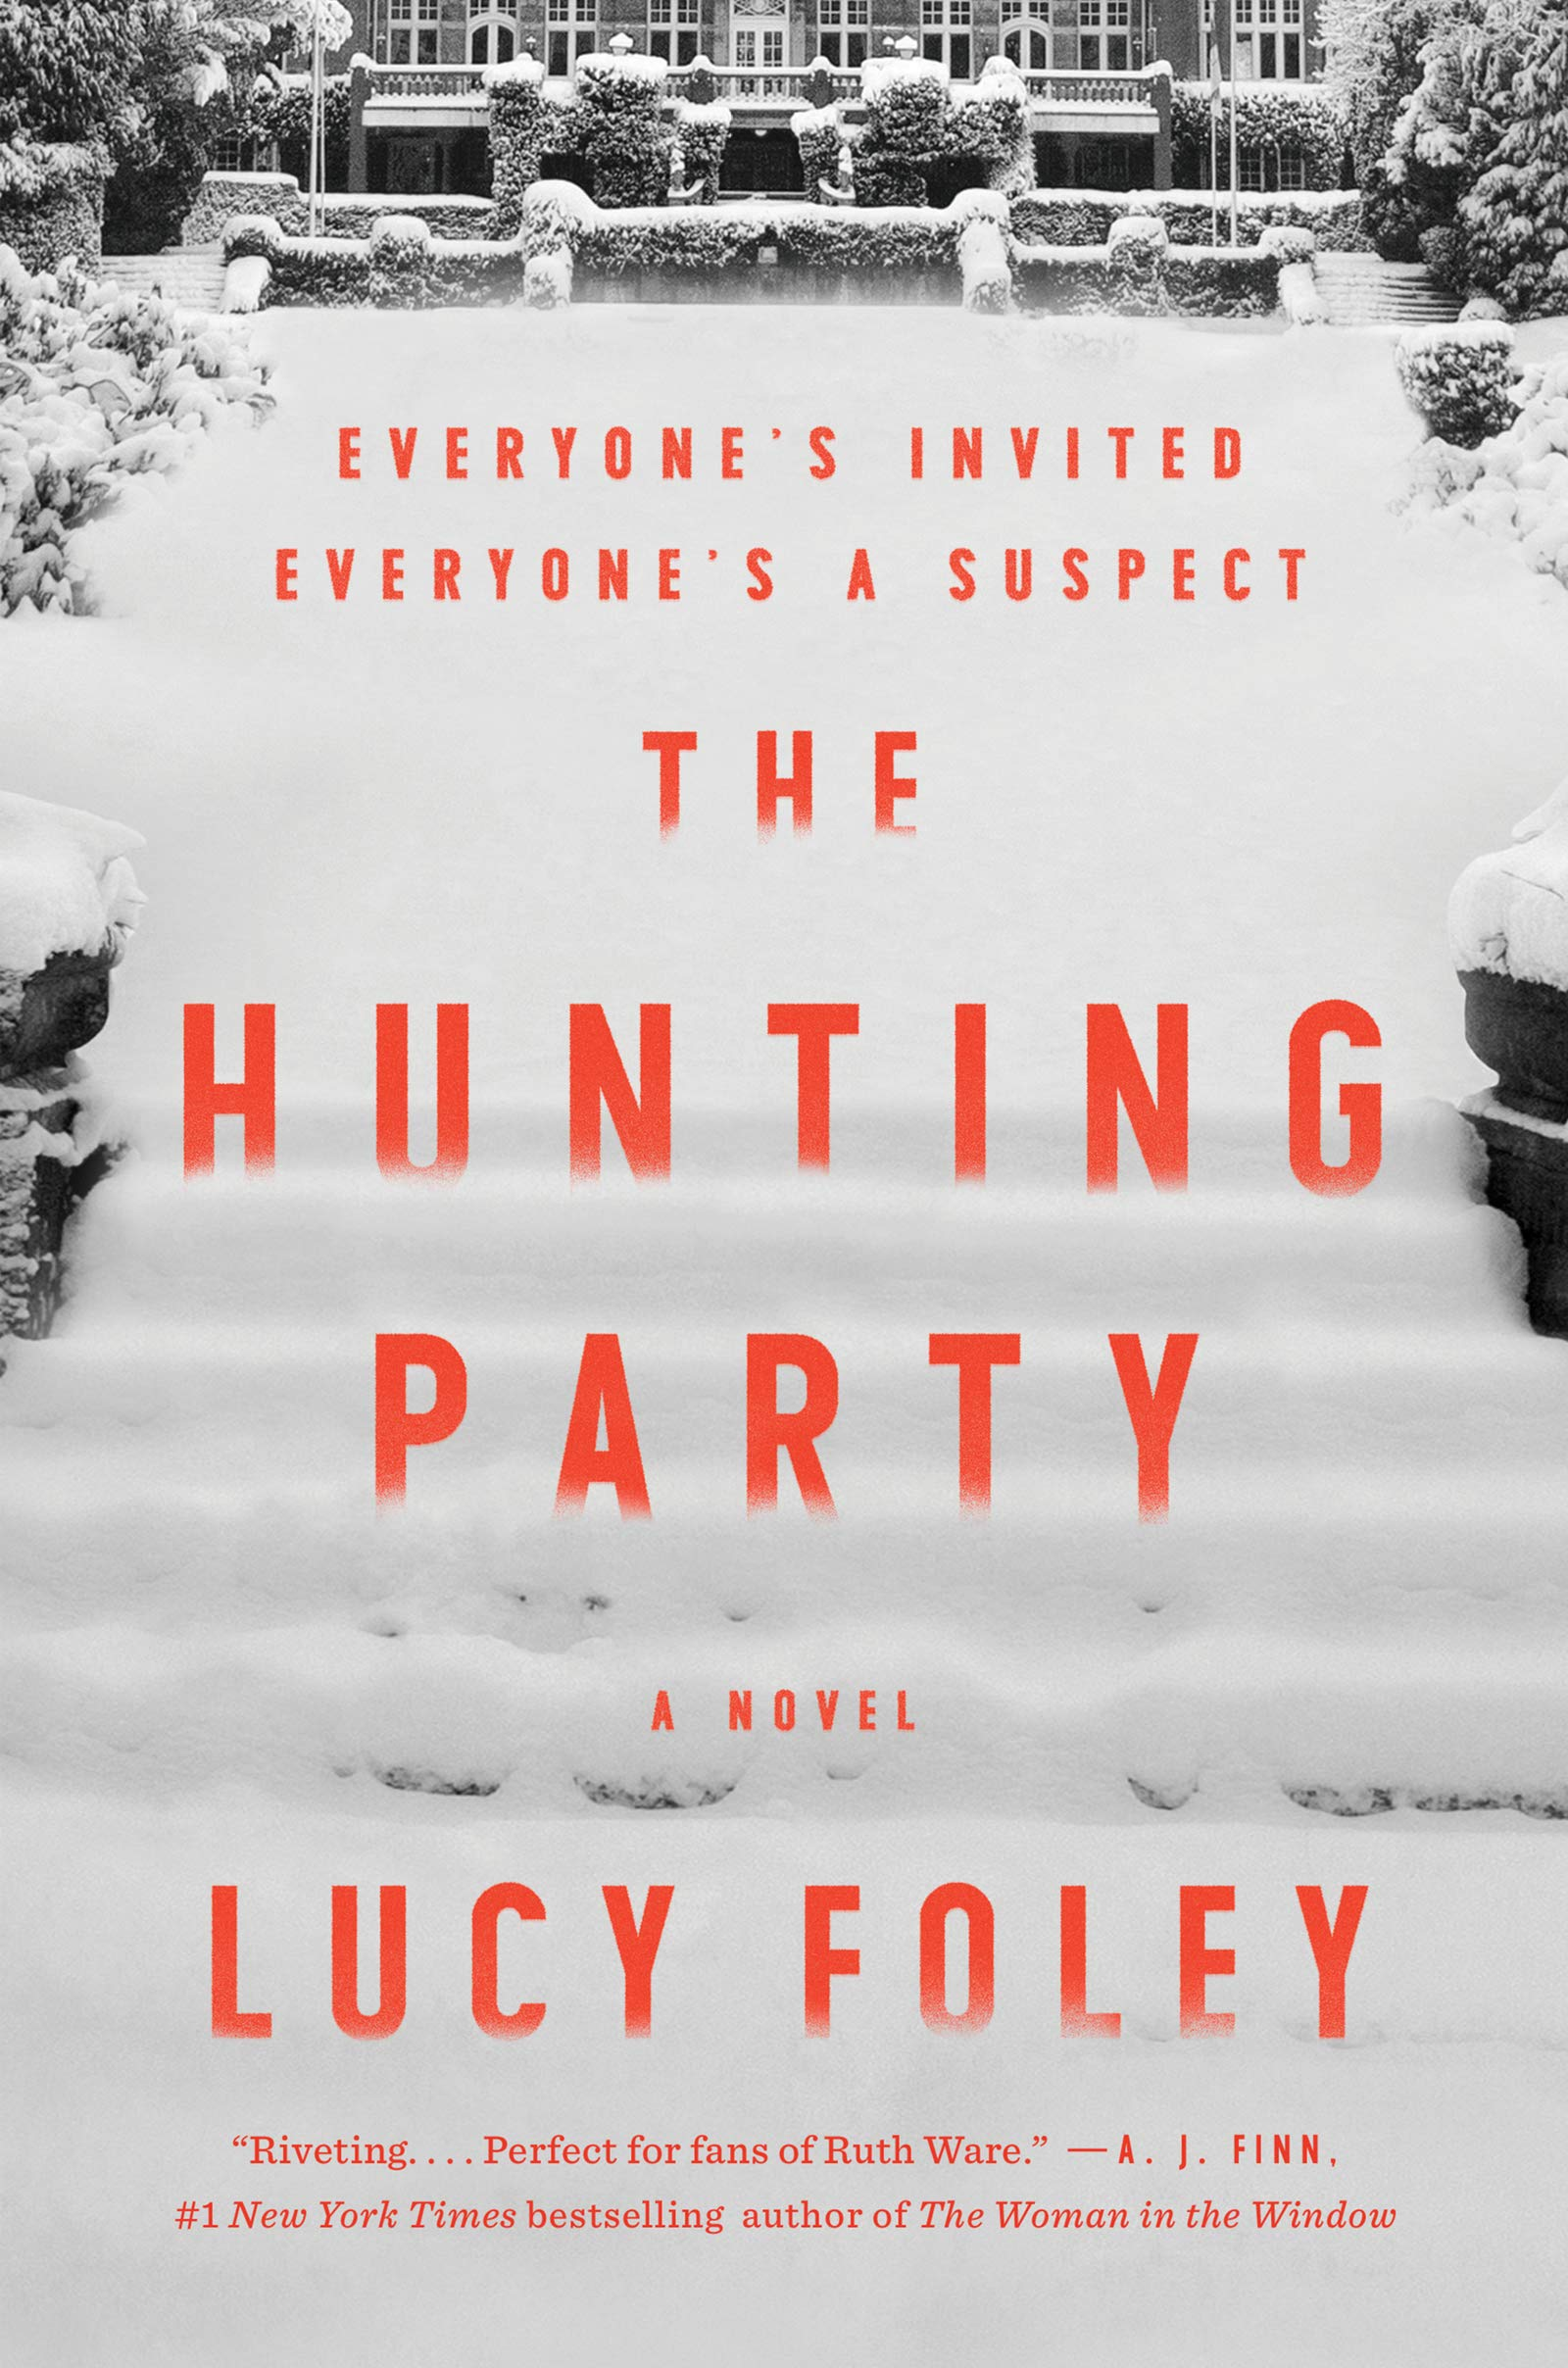 Amazon.com: The Hunting Party: A Novel (9780062868909): Foley, Lucy: Books